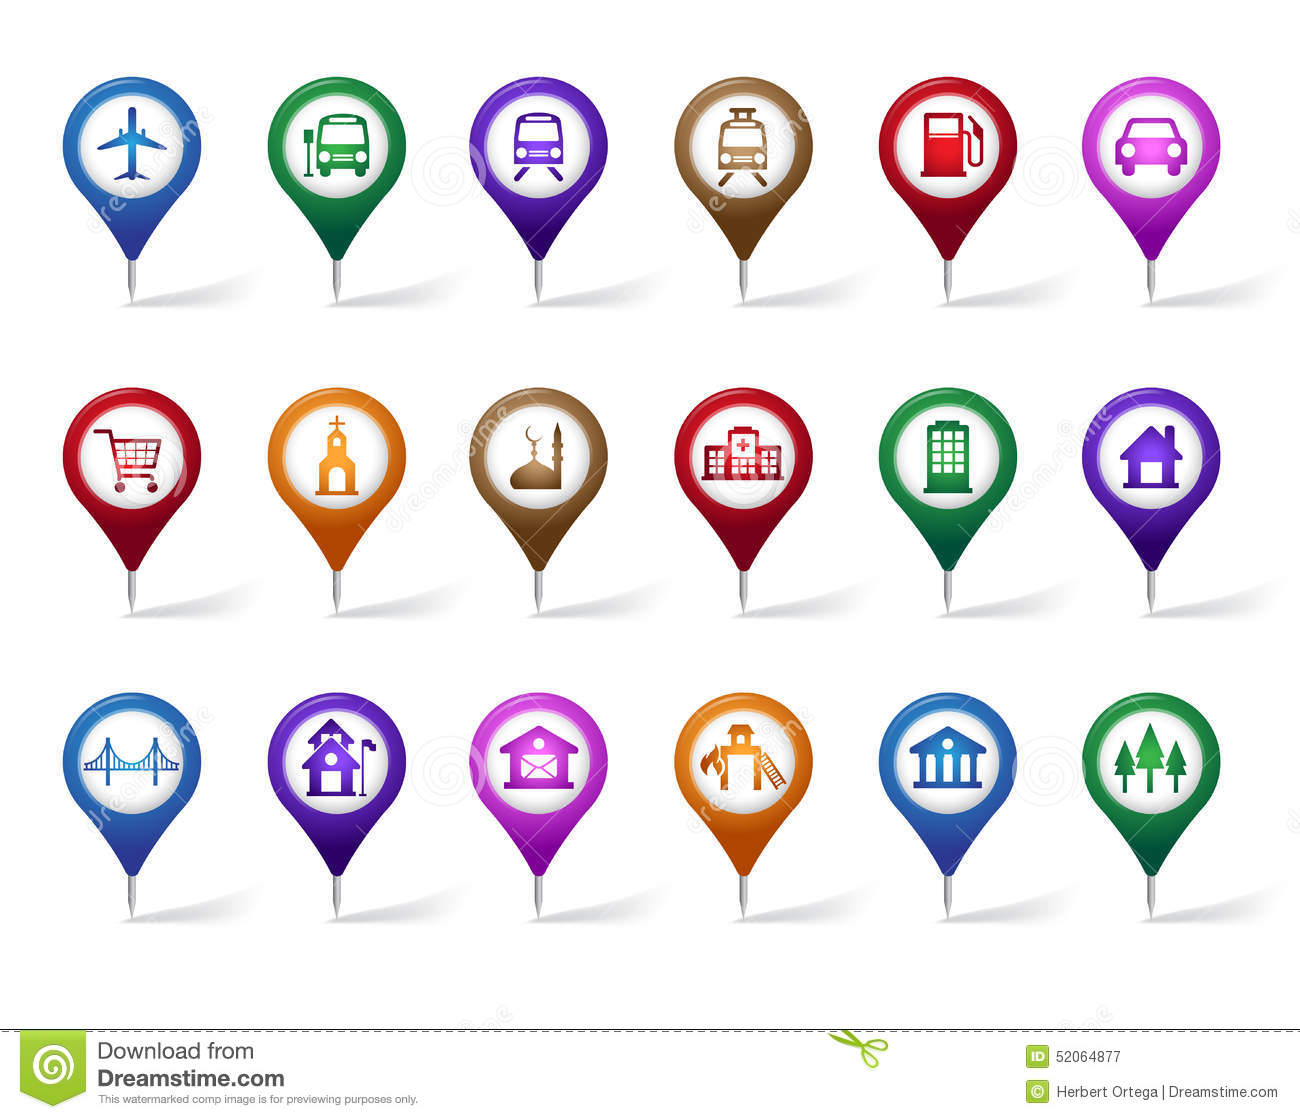 Colorful Set Of Location Places Travel And Destination Pin Icons – Travel Destination Maps